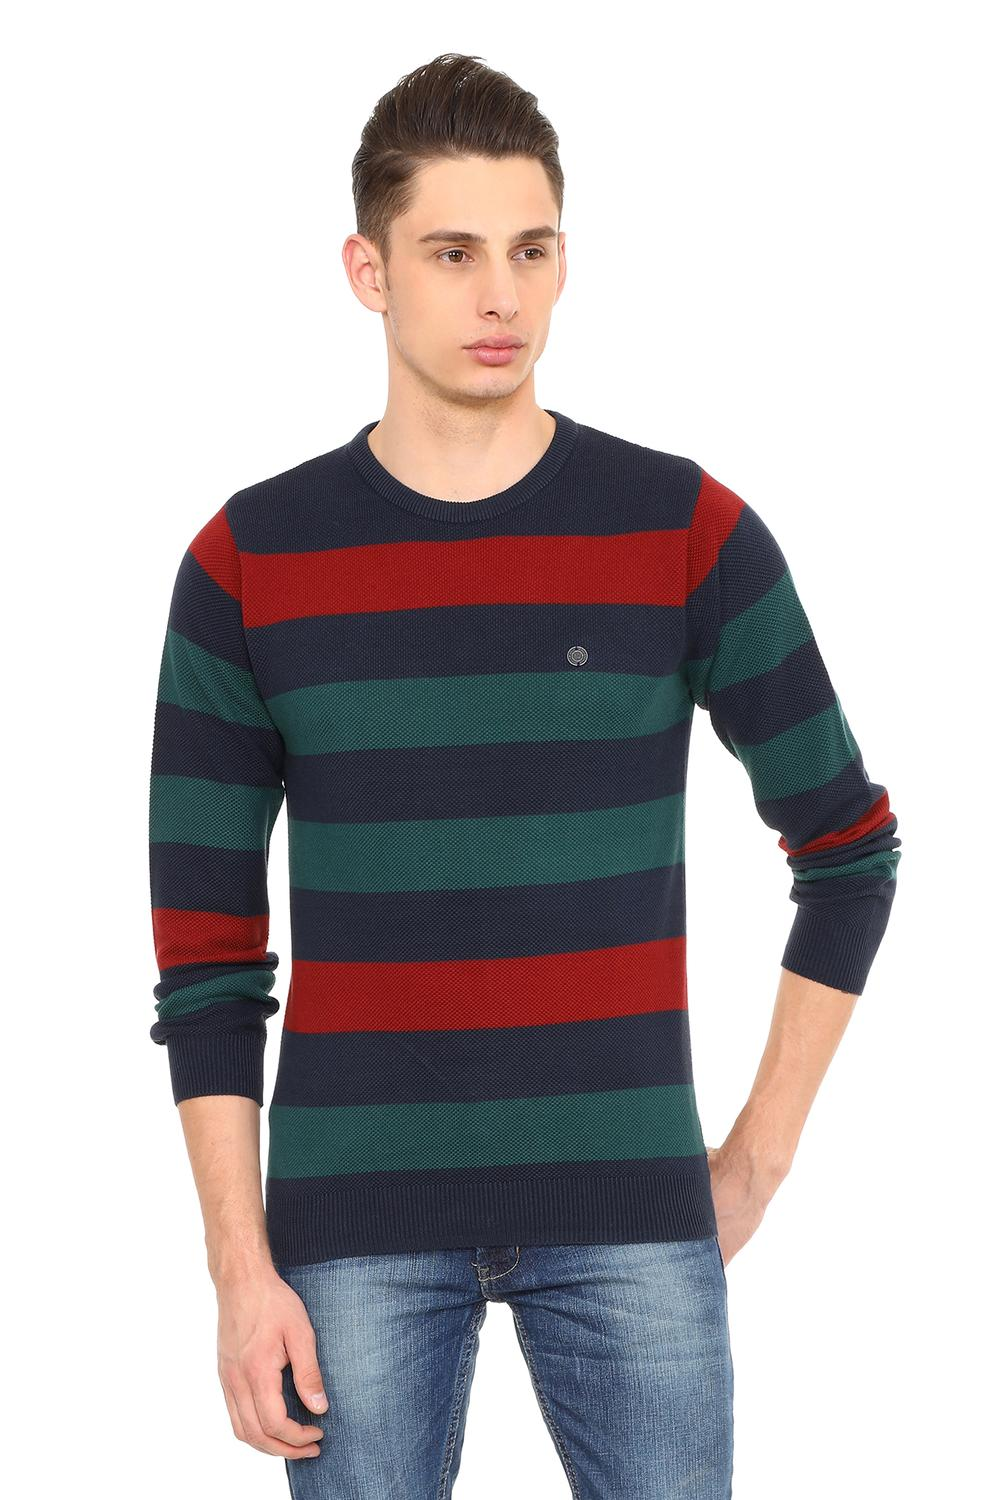 0a69a0ed322 Solly Jeans Co Sweaters